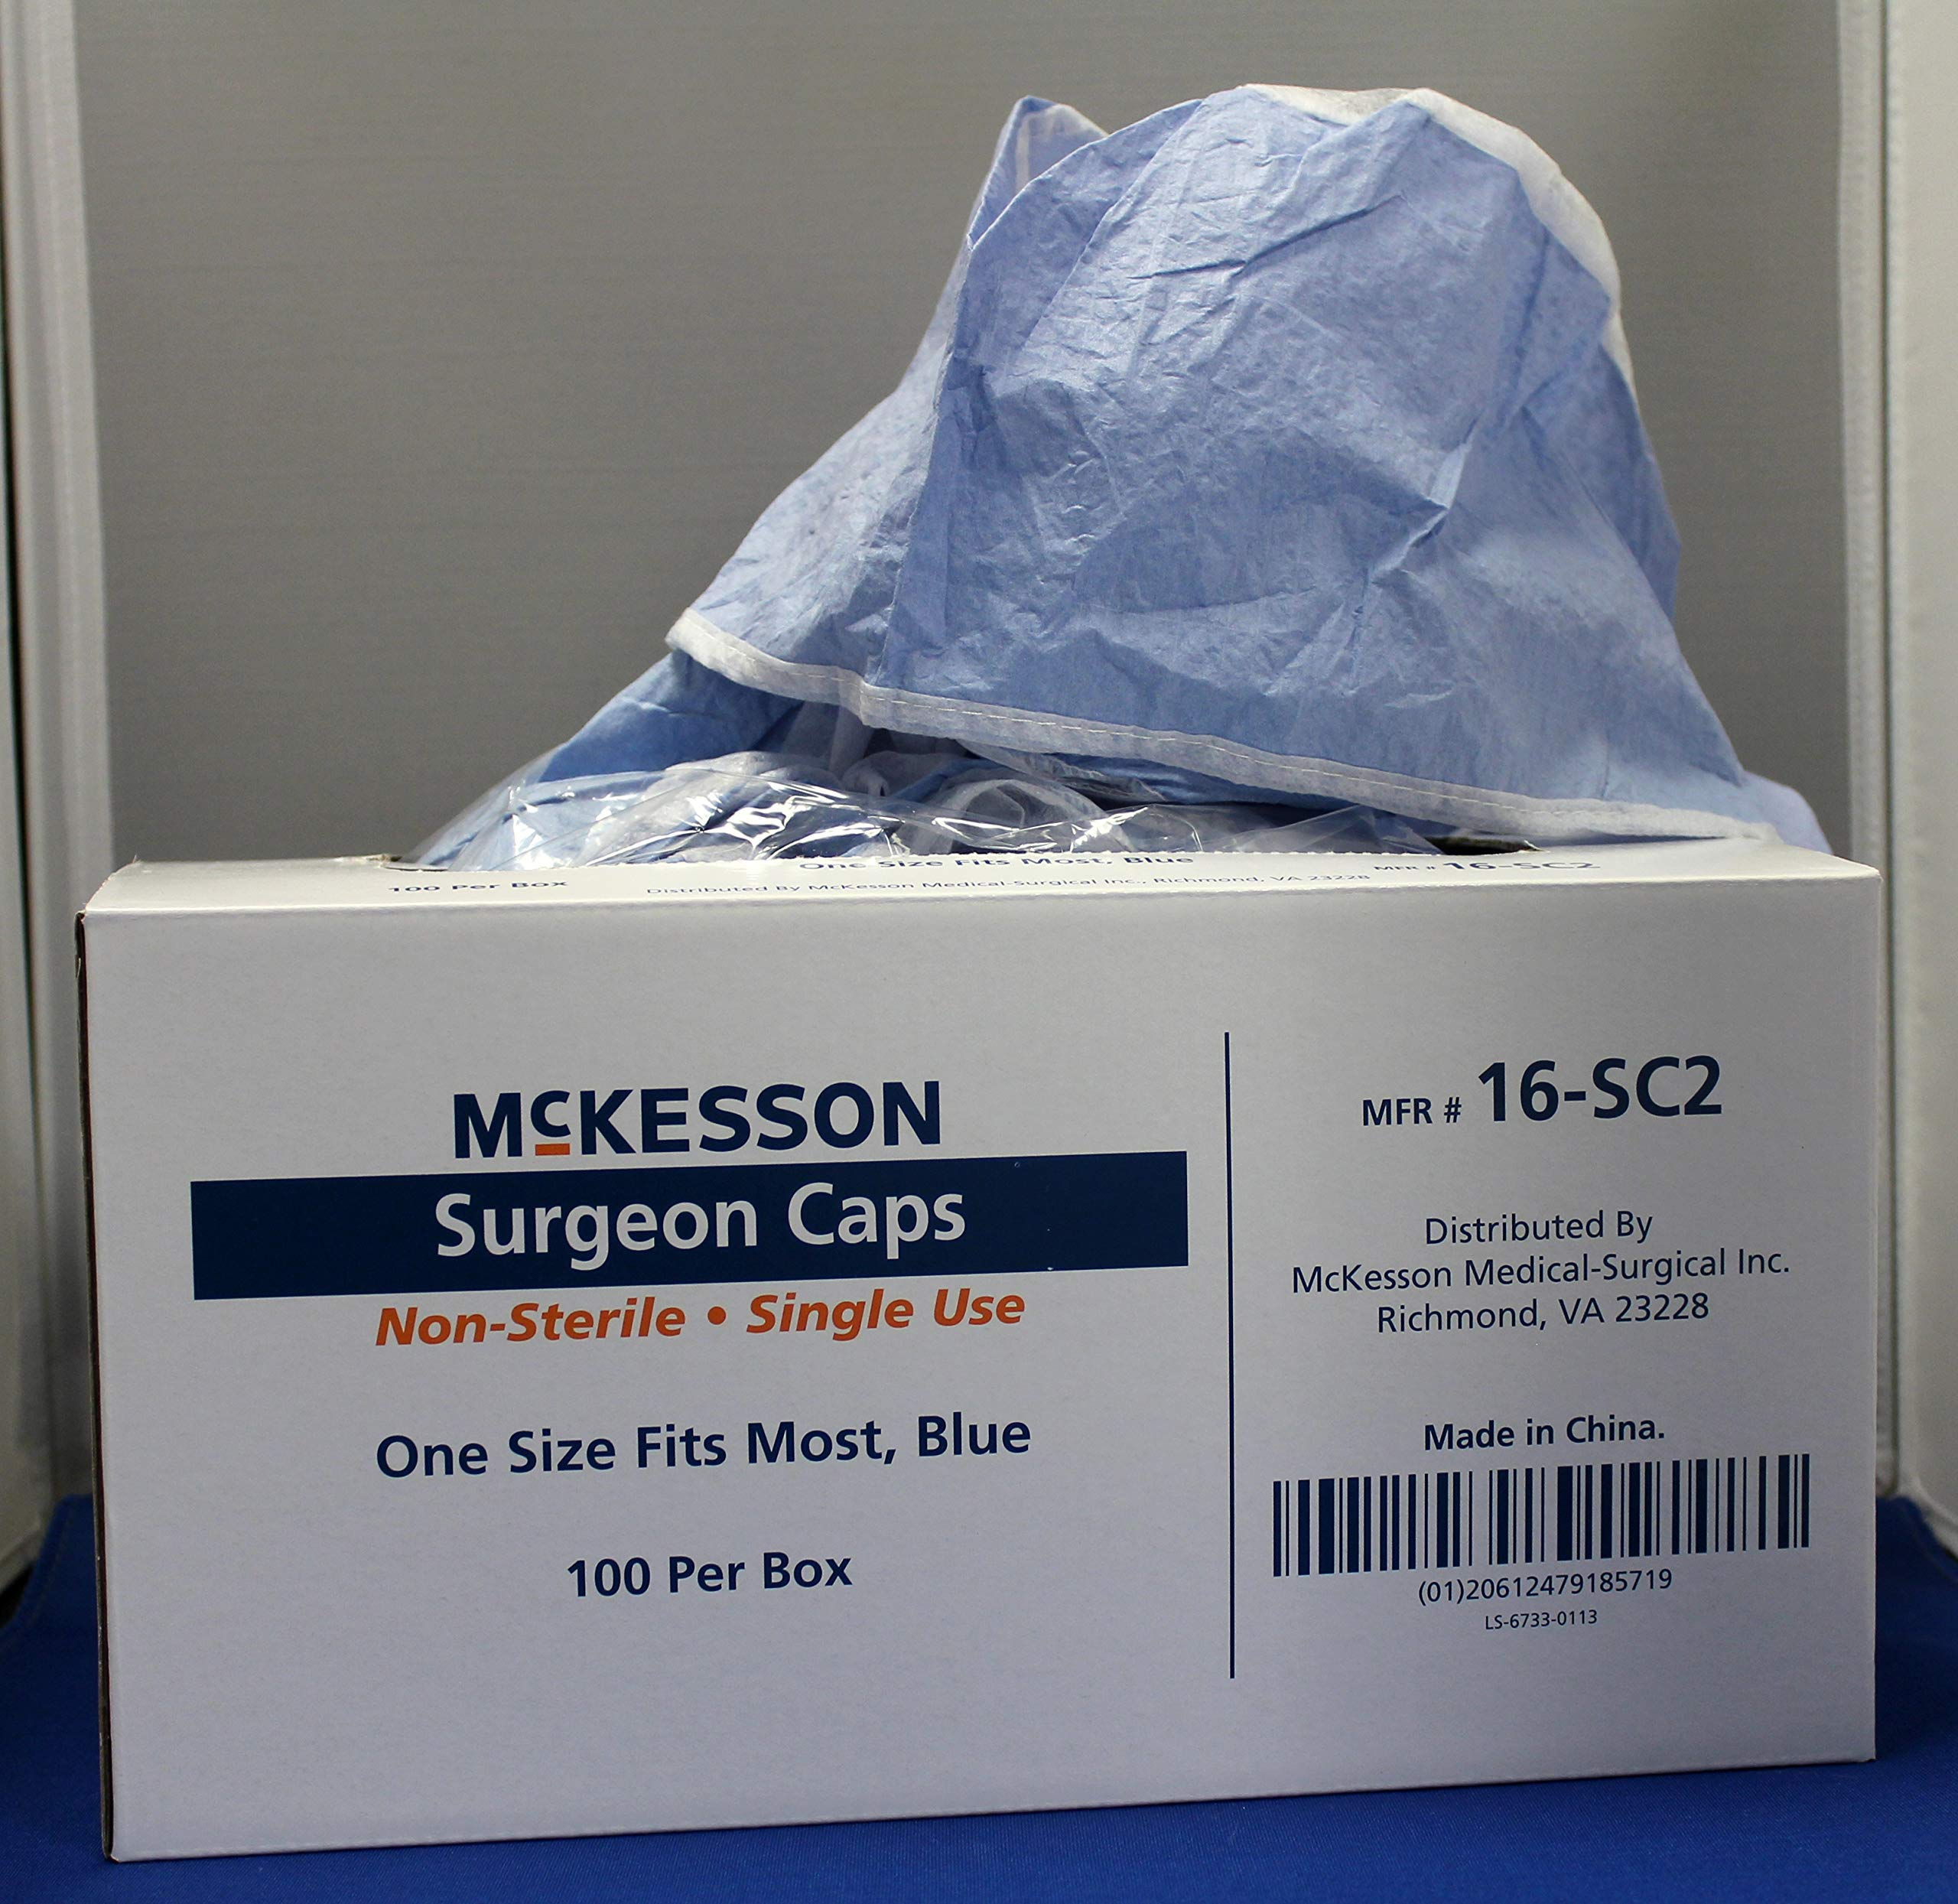 MCK72321100 - Mckesson Brand Surgeon Cap McKesson One Size Fits Most Blue Ties by McKesson